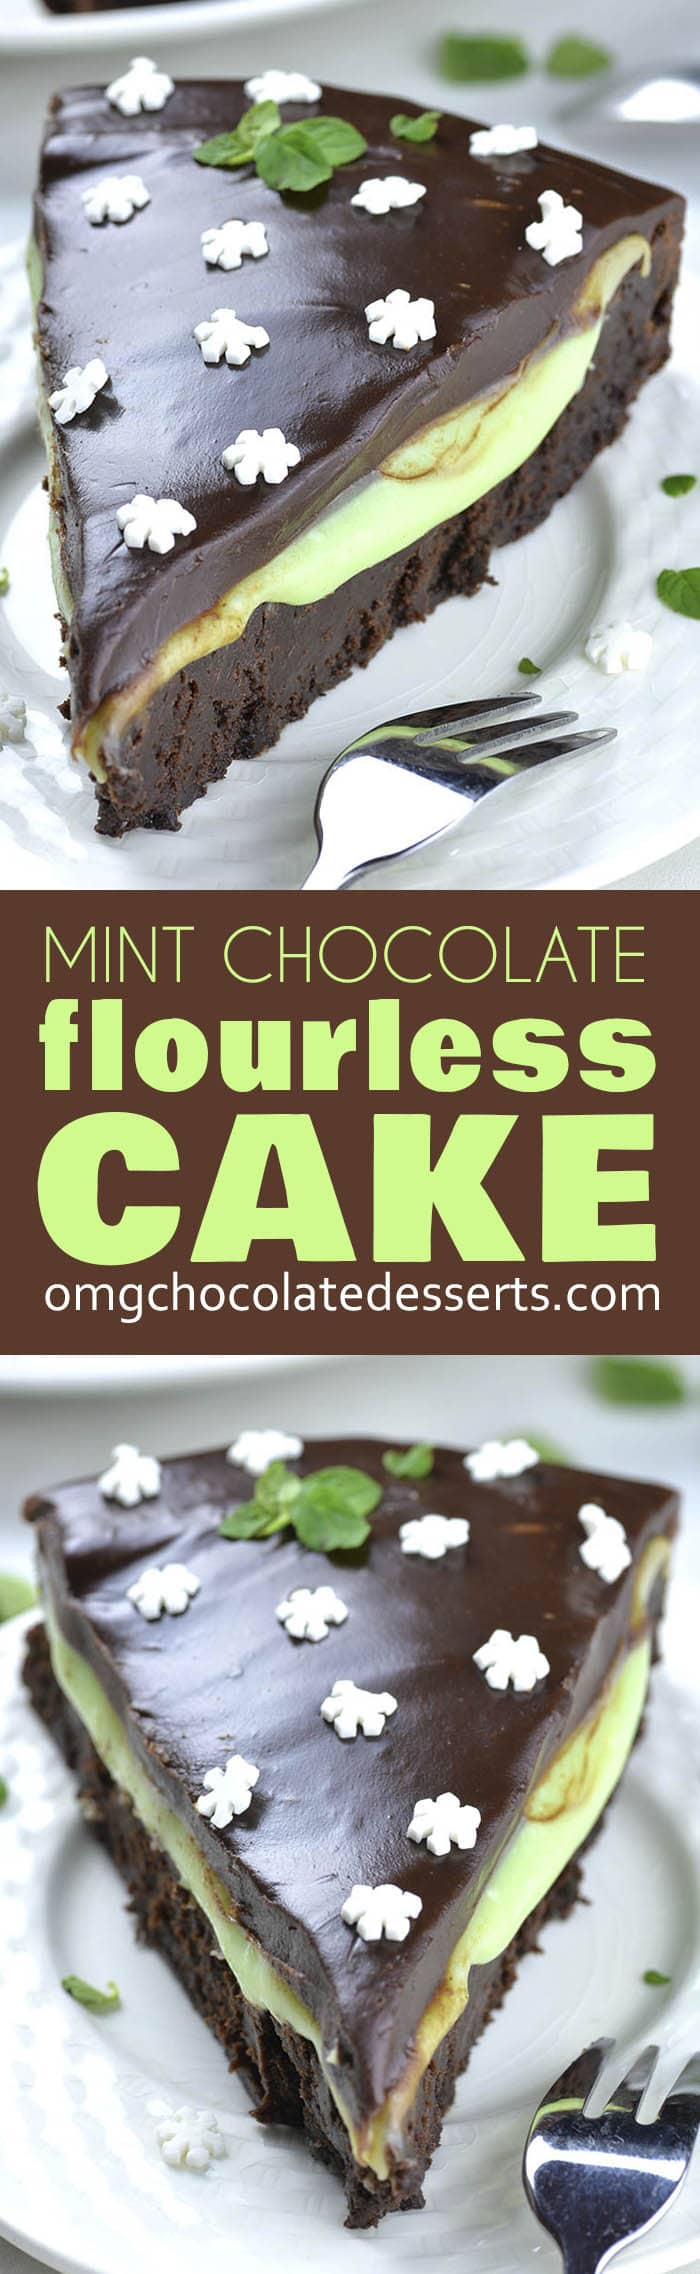 Chocolate mint combo is perfect for winter holidays. If you are looking for perfect Christmas dessert recipes for your Christmas table this year, you should consider this decadent Flourless Mint Chocolate Cake. It's super SIMPLE and EASY to make.